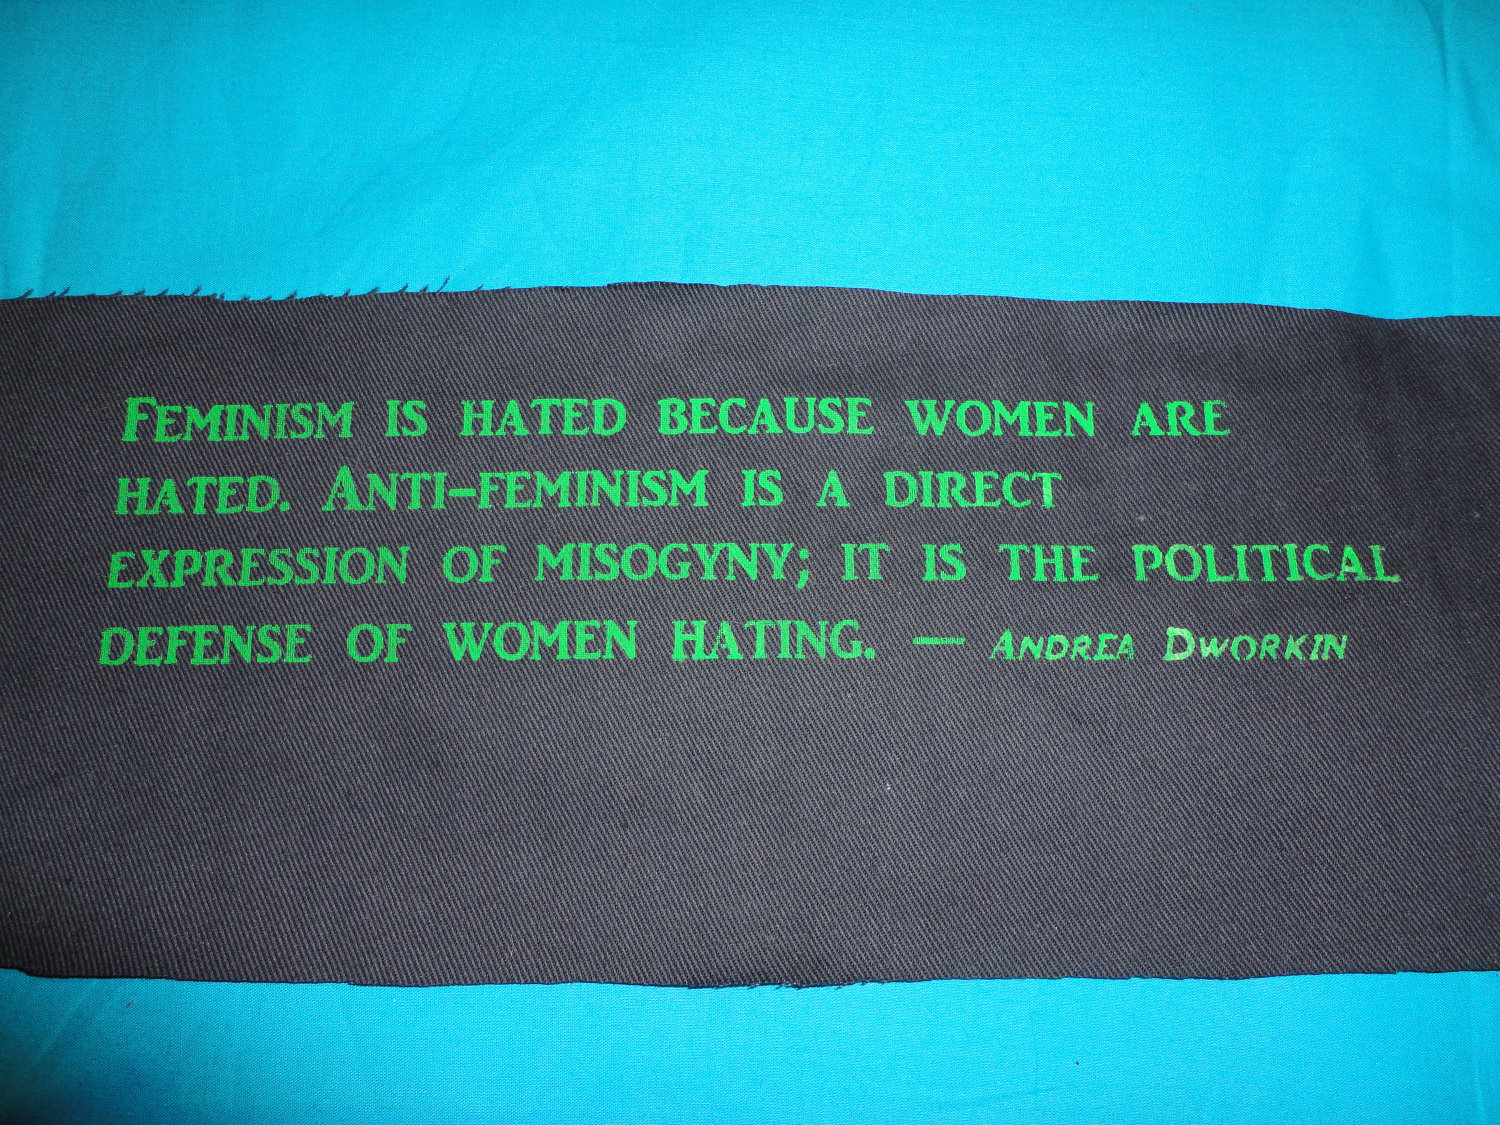 Andrea Dworkin's quote #3